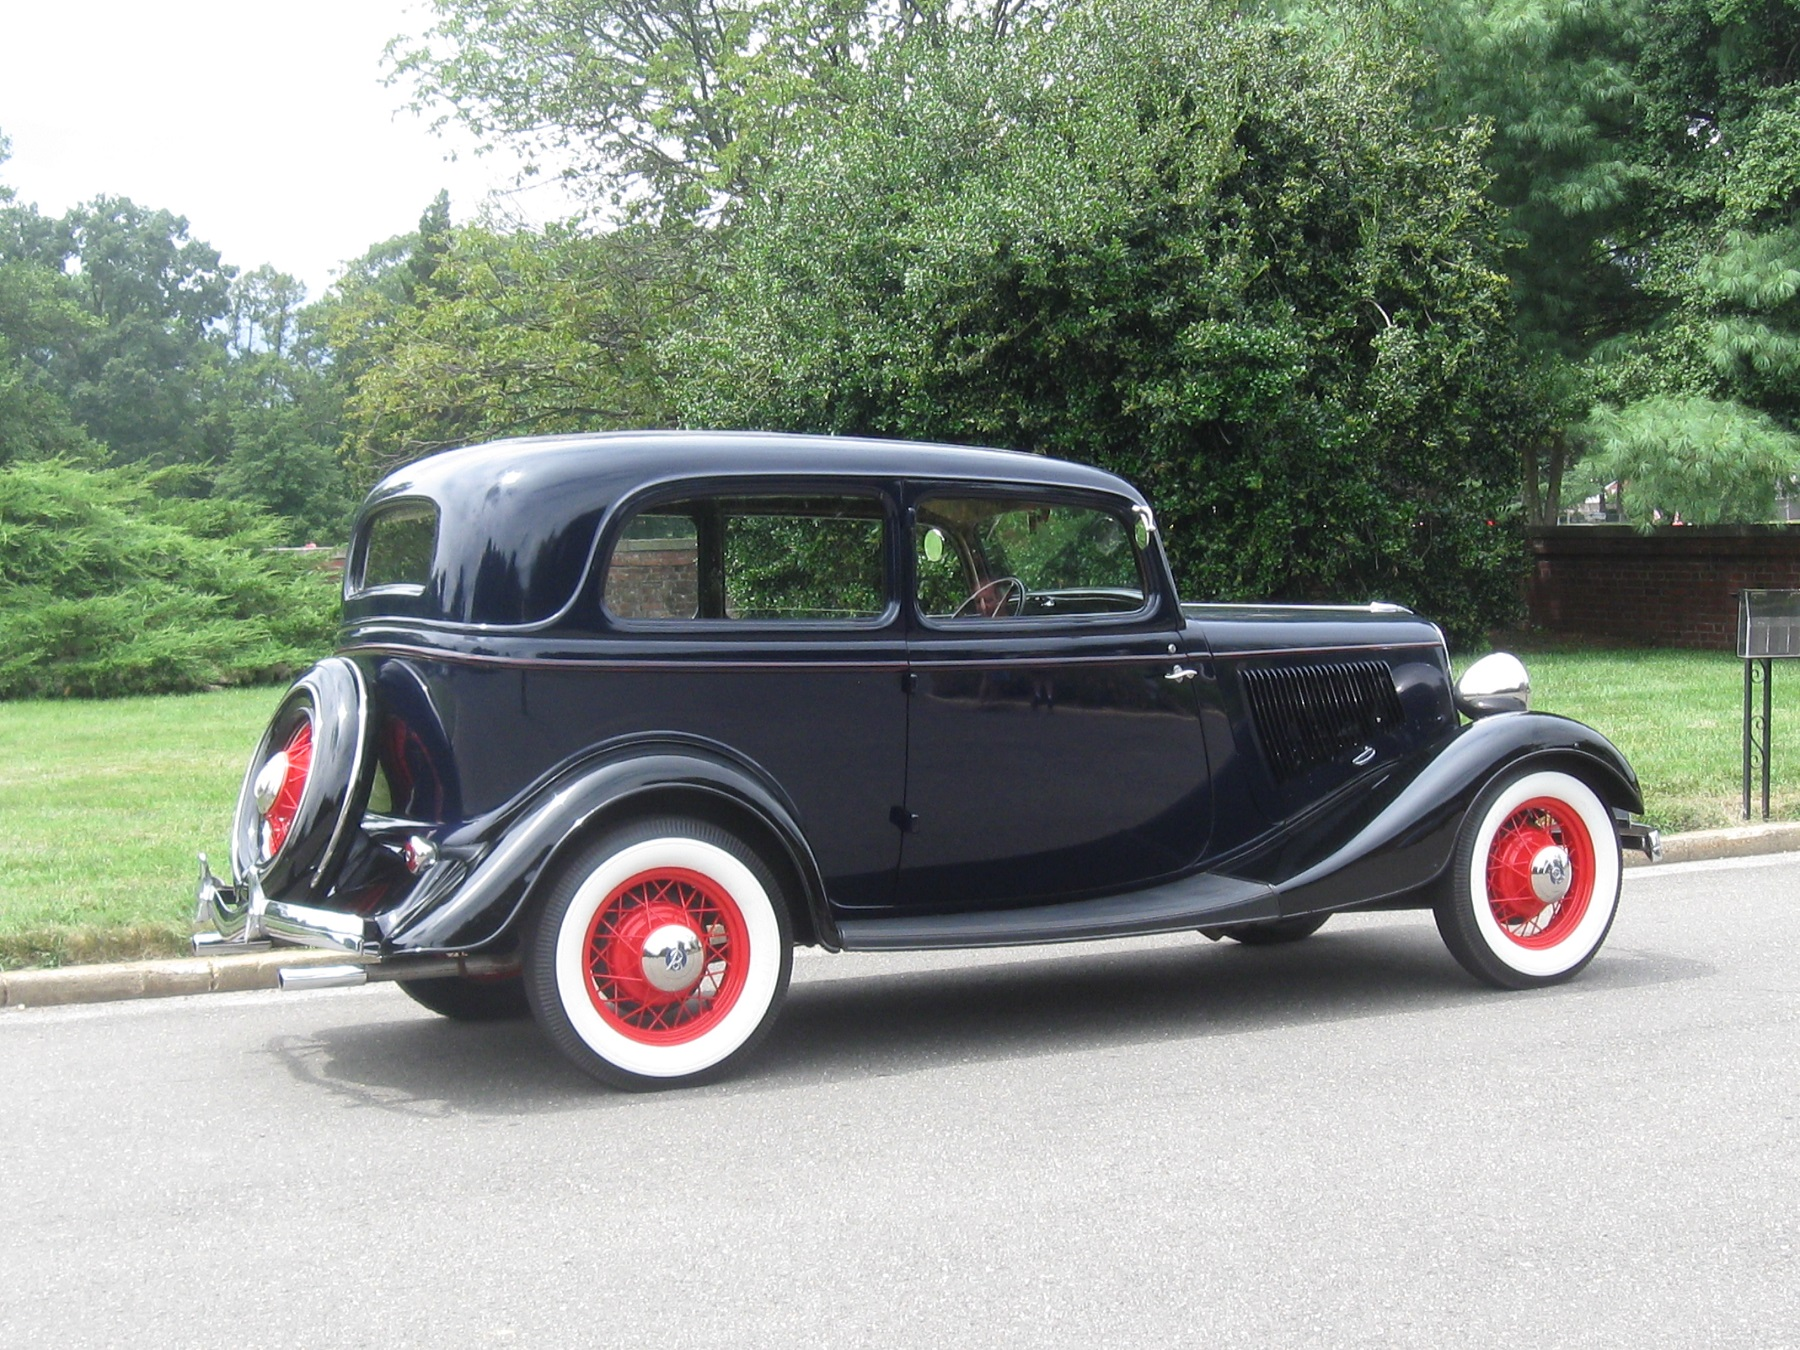 1933 Ford: V-8 sedan was popular with the public